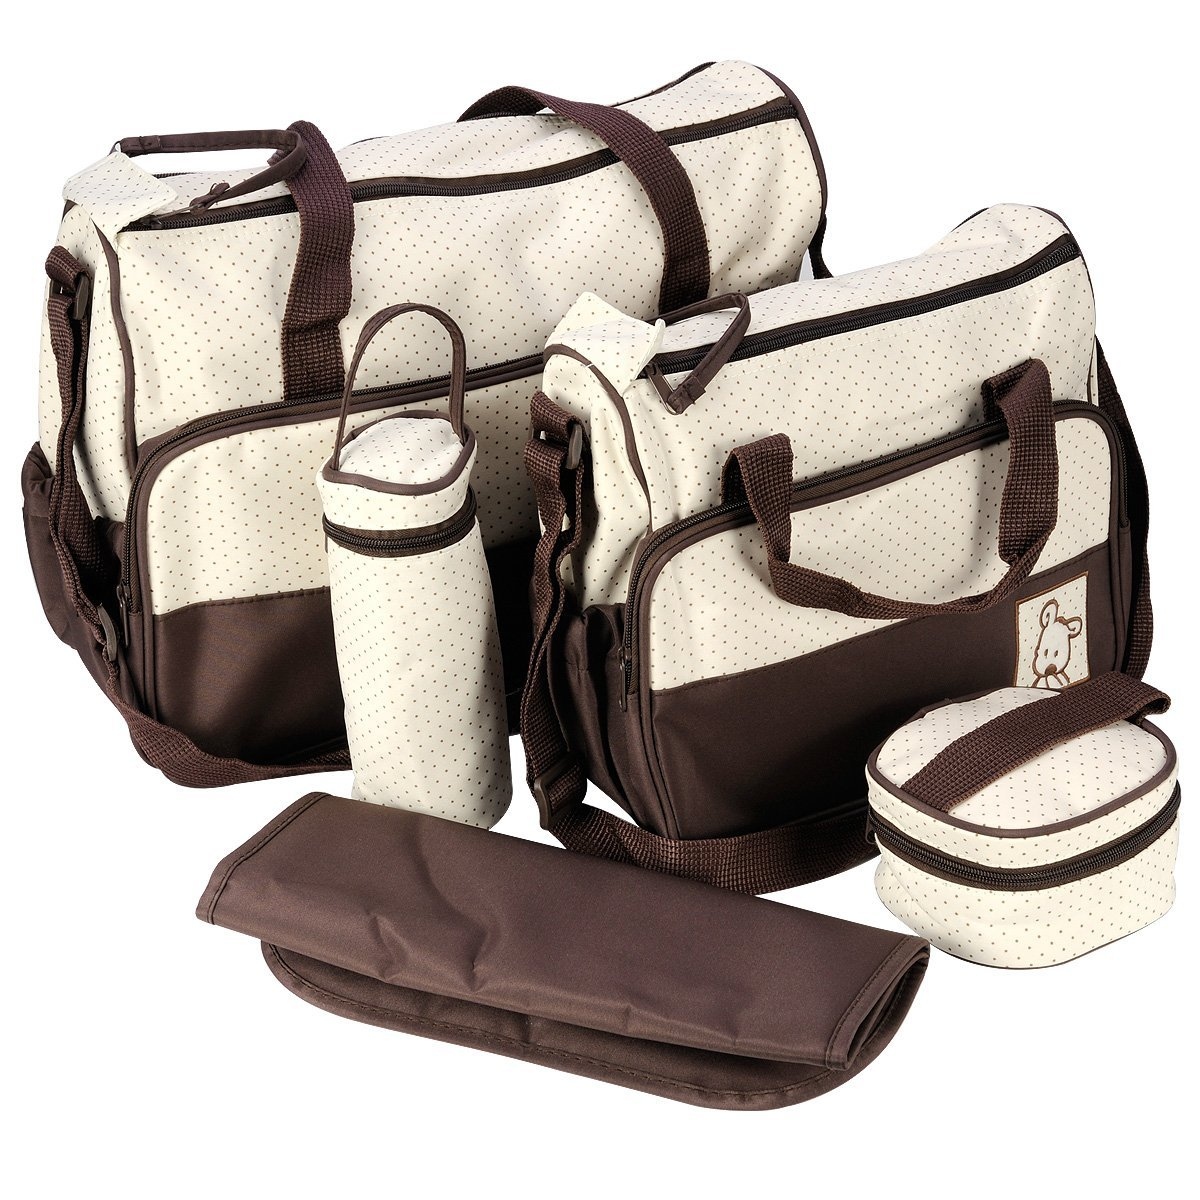 Best Sale 5 Pcs mother bag Baby Diaper Bag Stroller Maternity bag Nappy Bags Sets Suits For Mom Baby hangbag